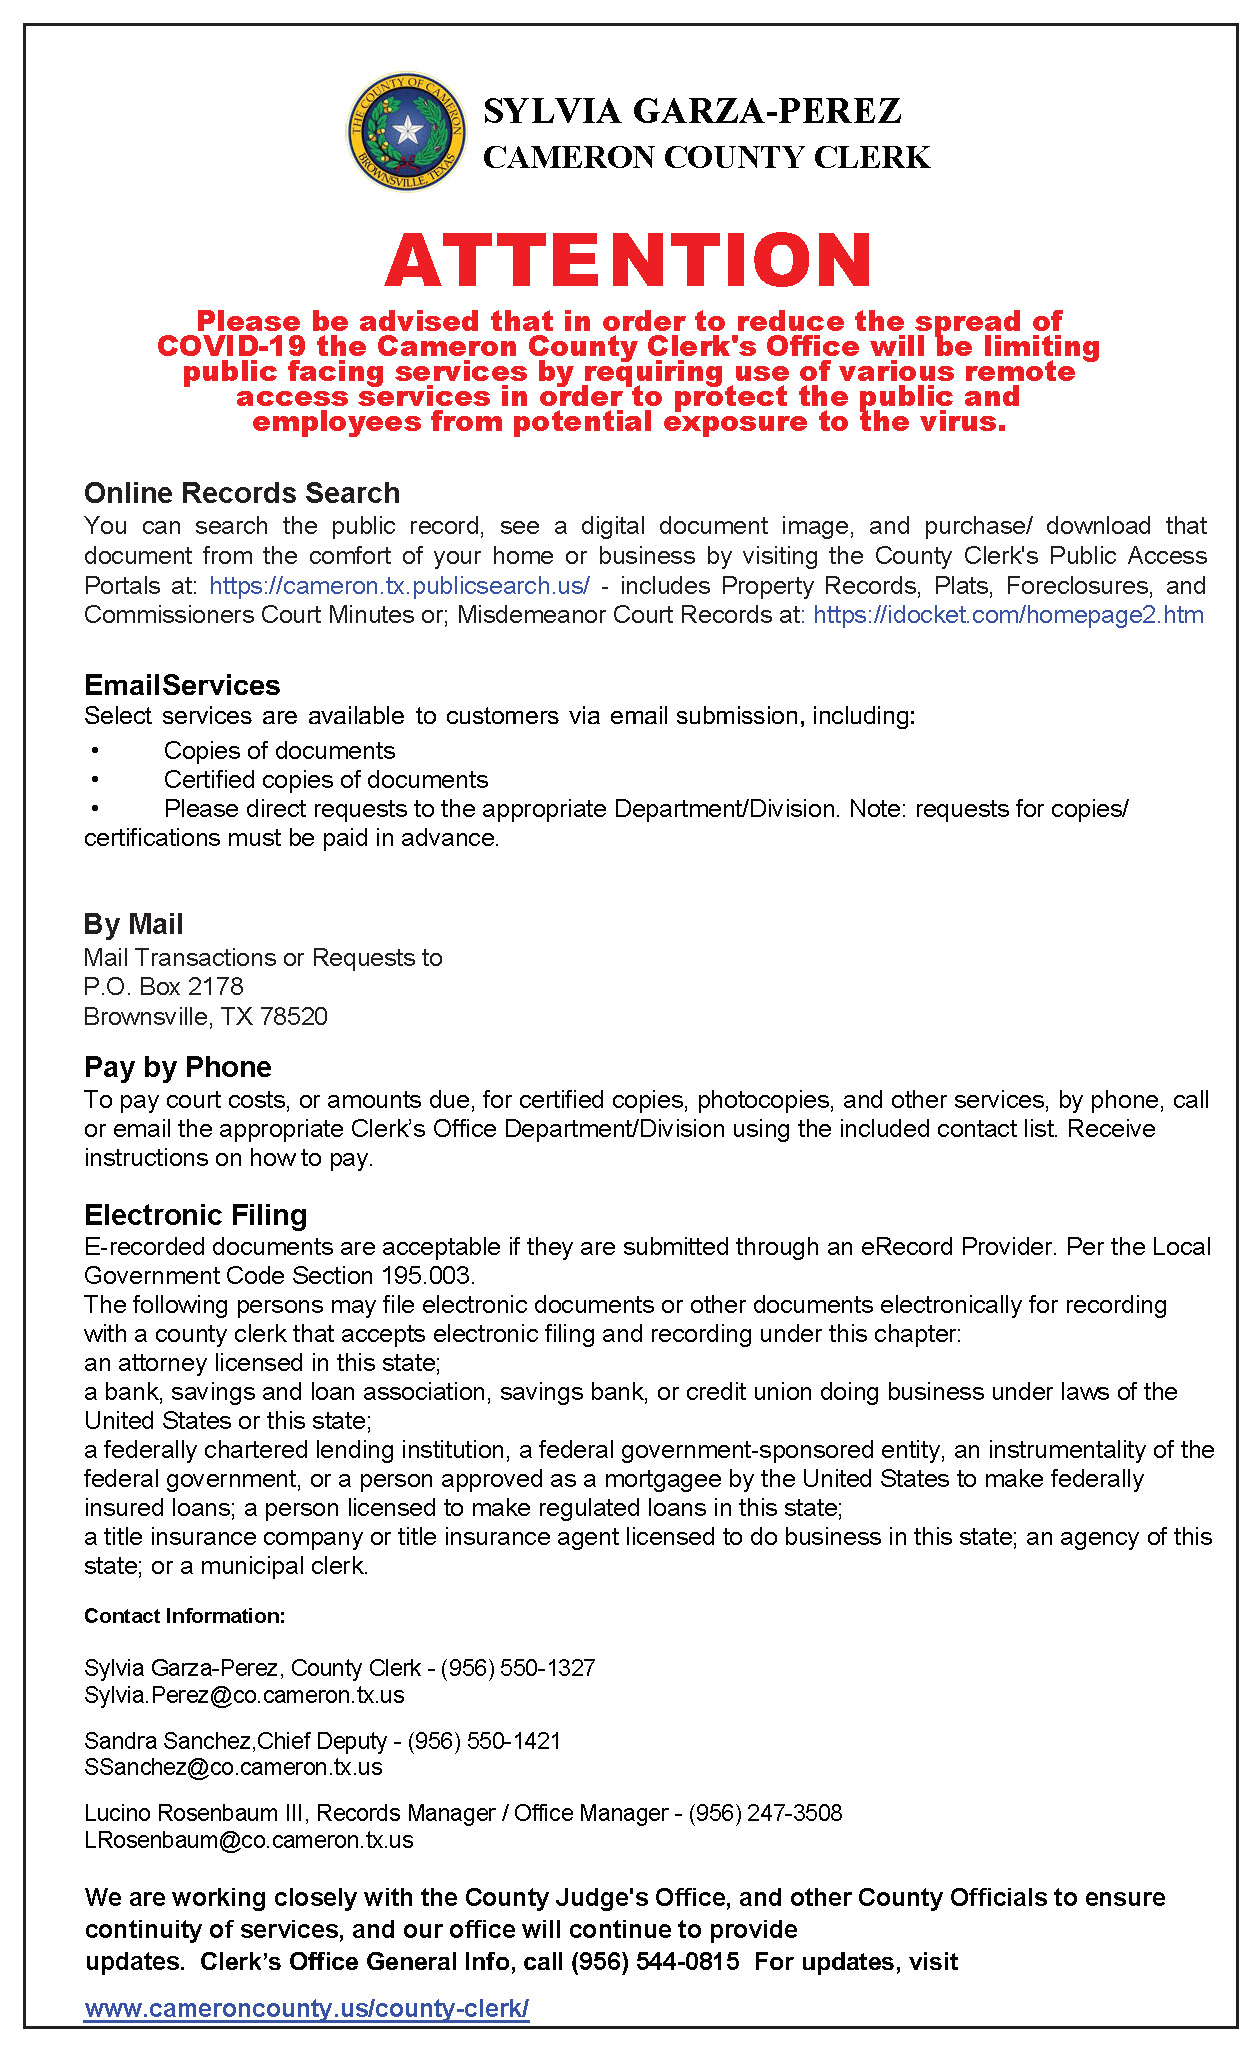 County Clerks Office Informational Flyer Recommending Use Of Available Remote Access Services